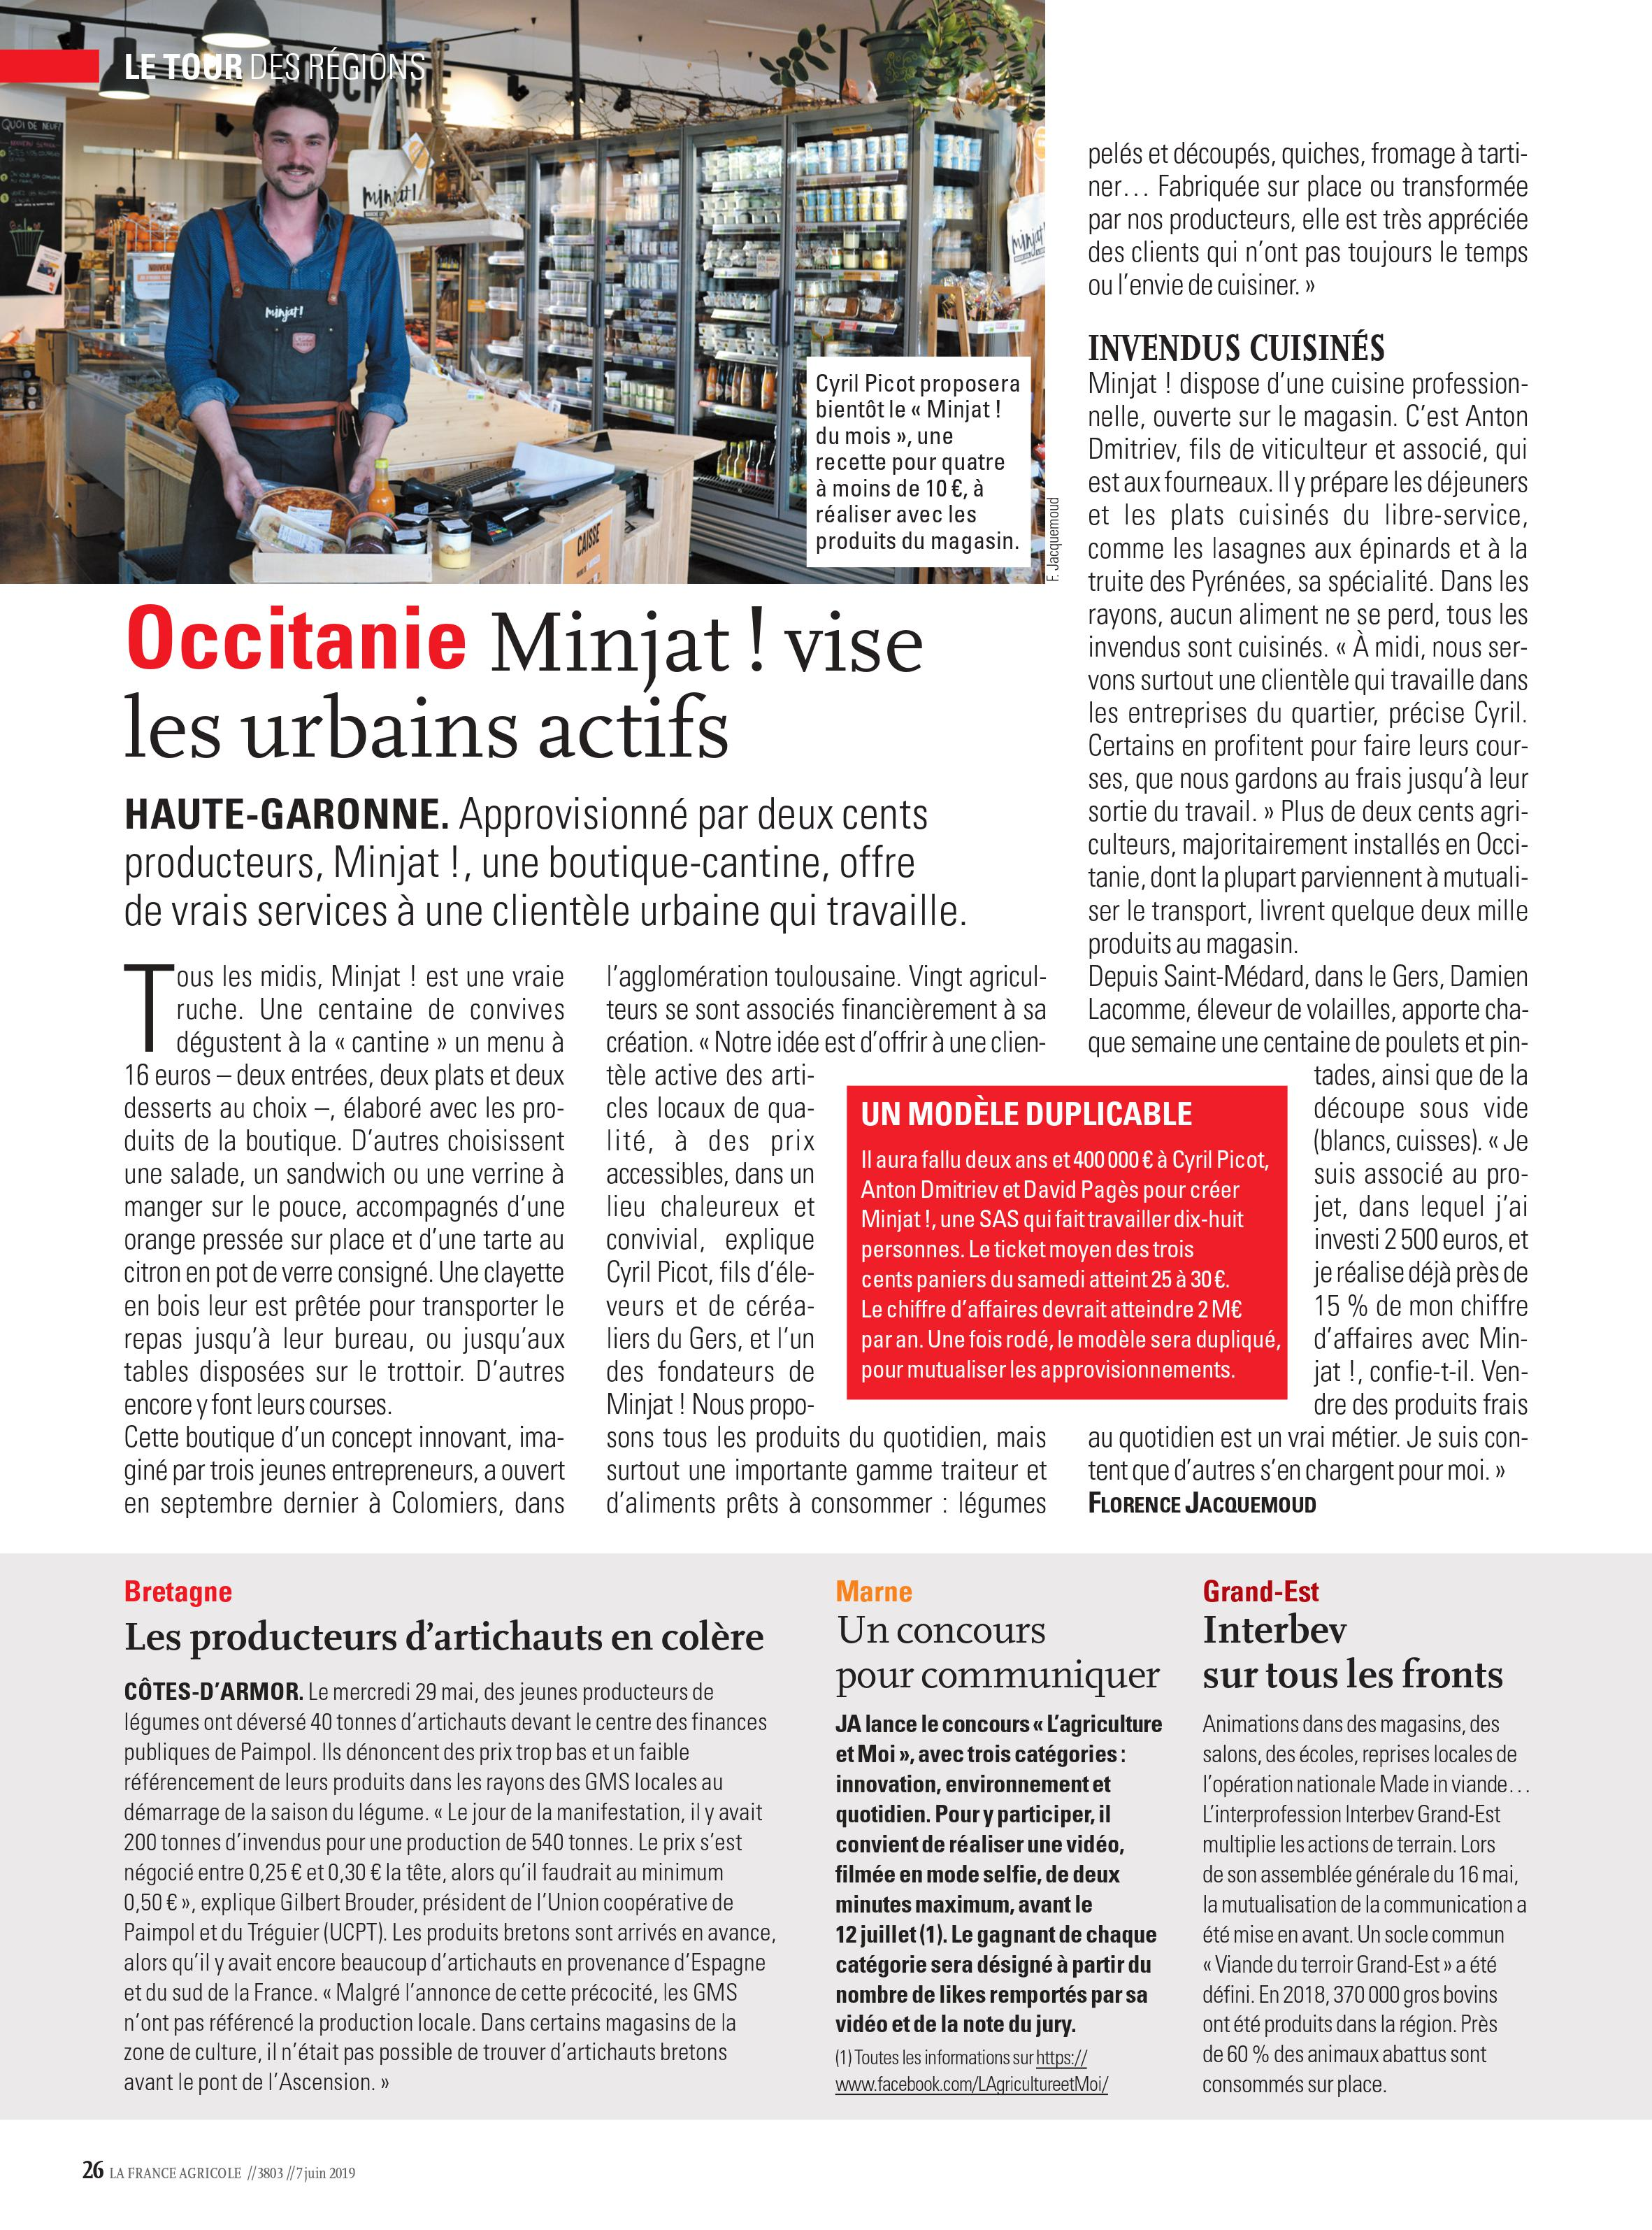 minjat france agricole article